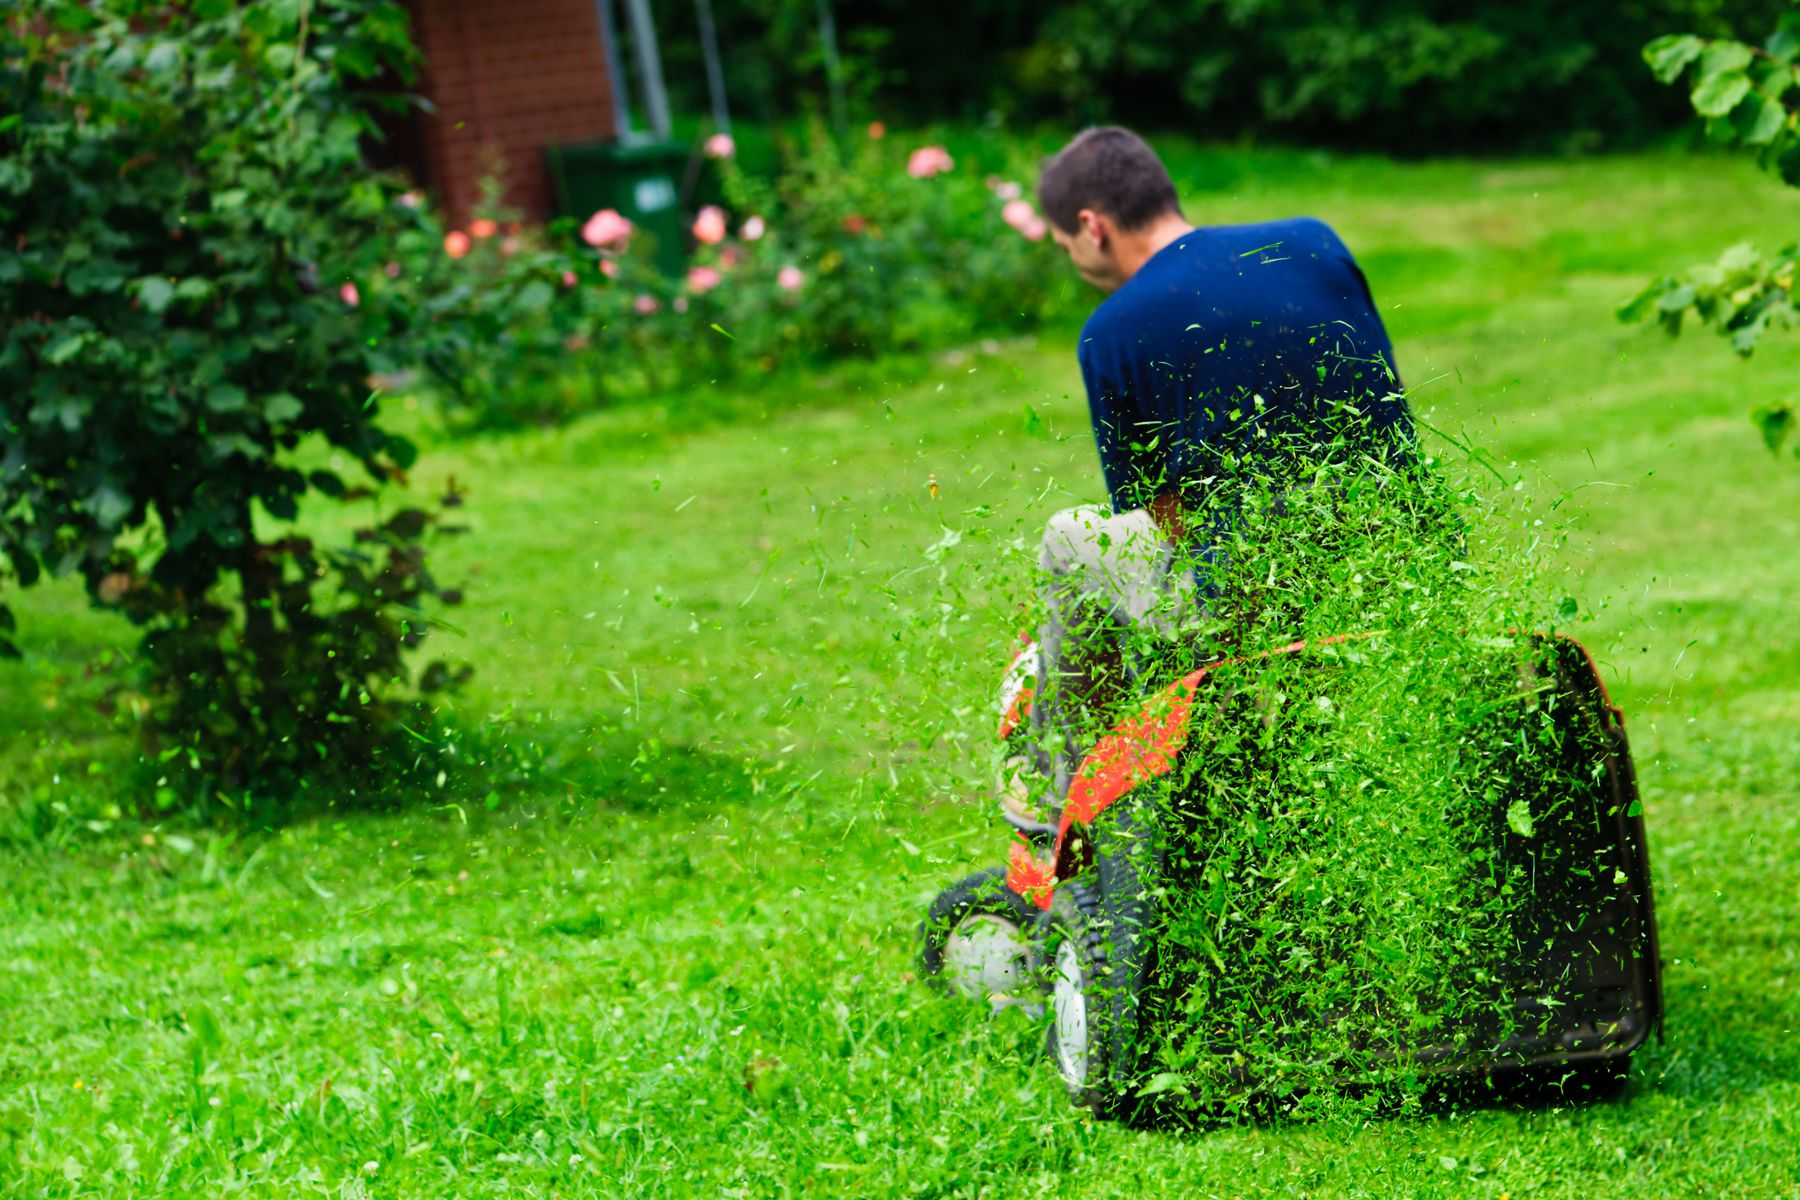 Ride-on lawn mower cutting grass. Focus on grasses in air.